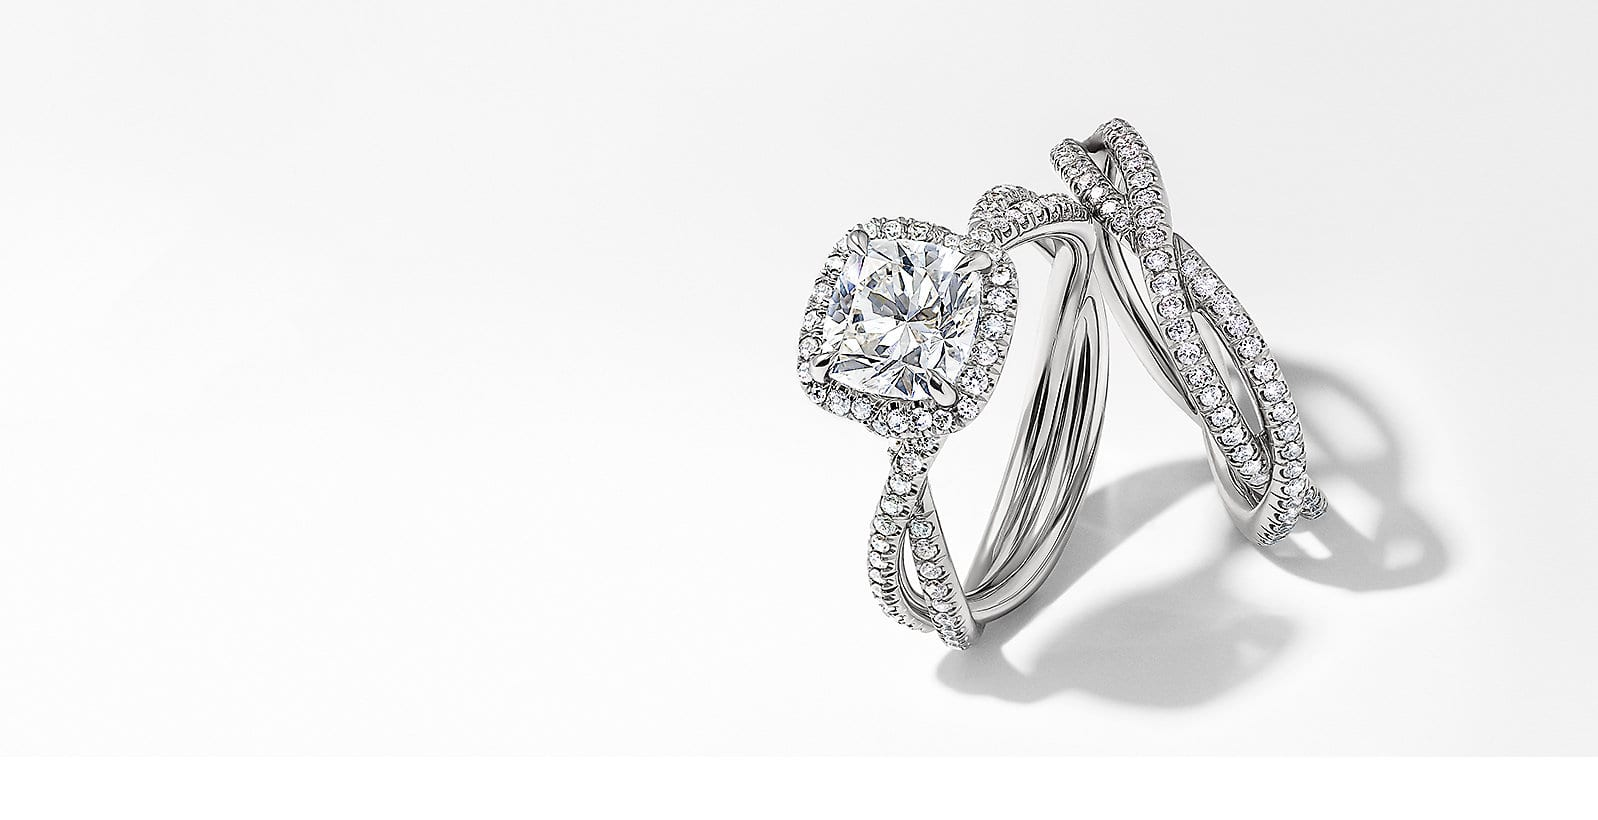 A diamond and platinum engagement ring and band